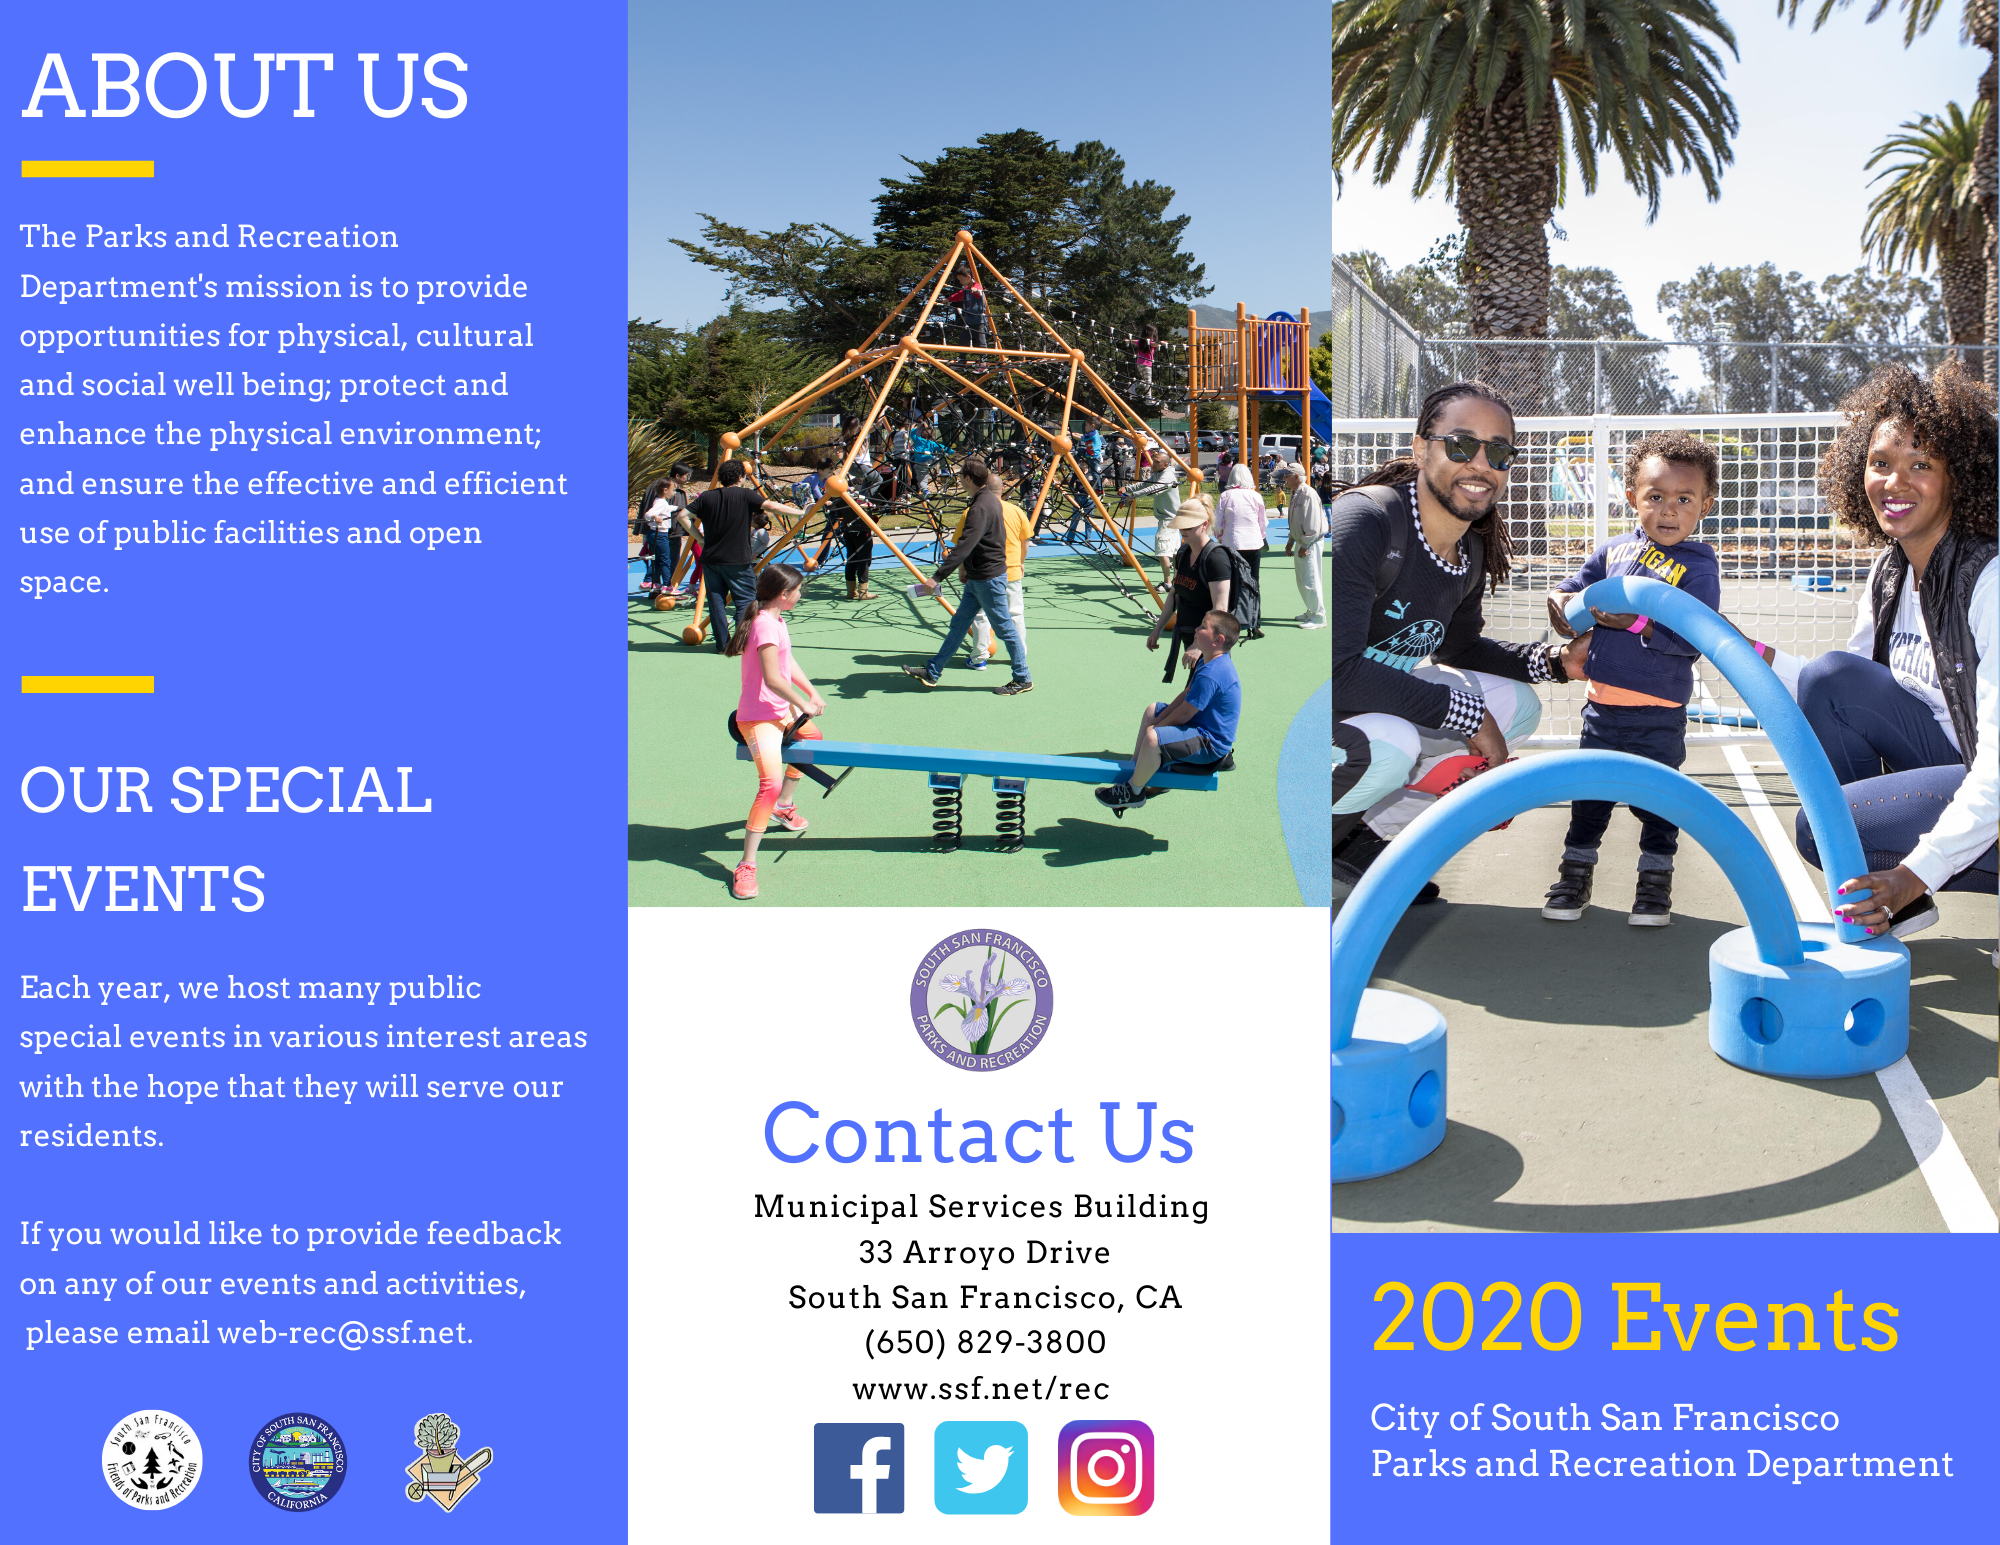 Ssf Halloween Party 2020 Dates Events | City of South San Francisco